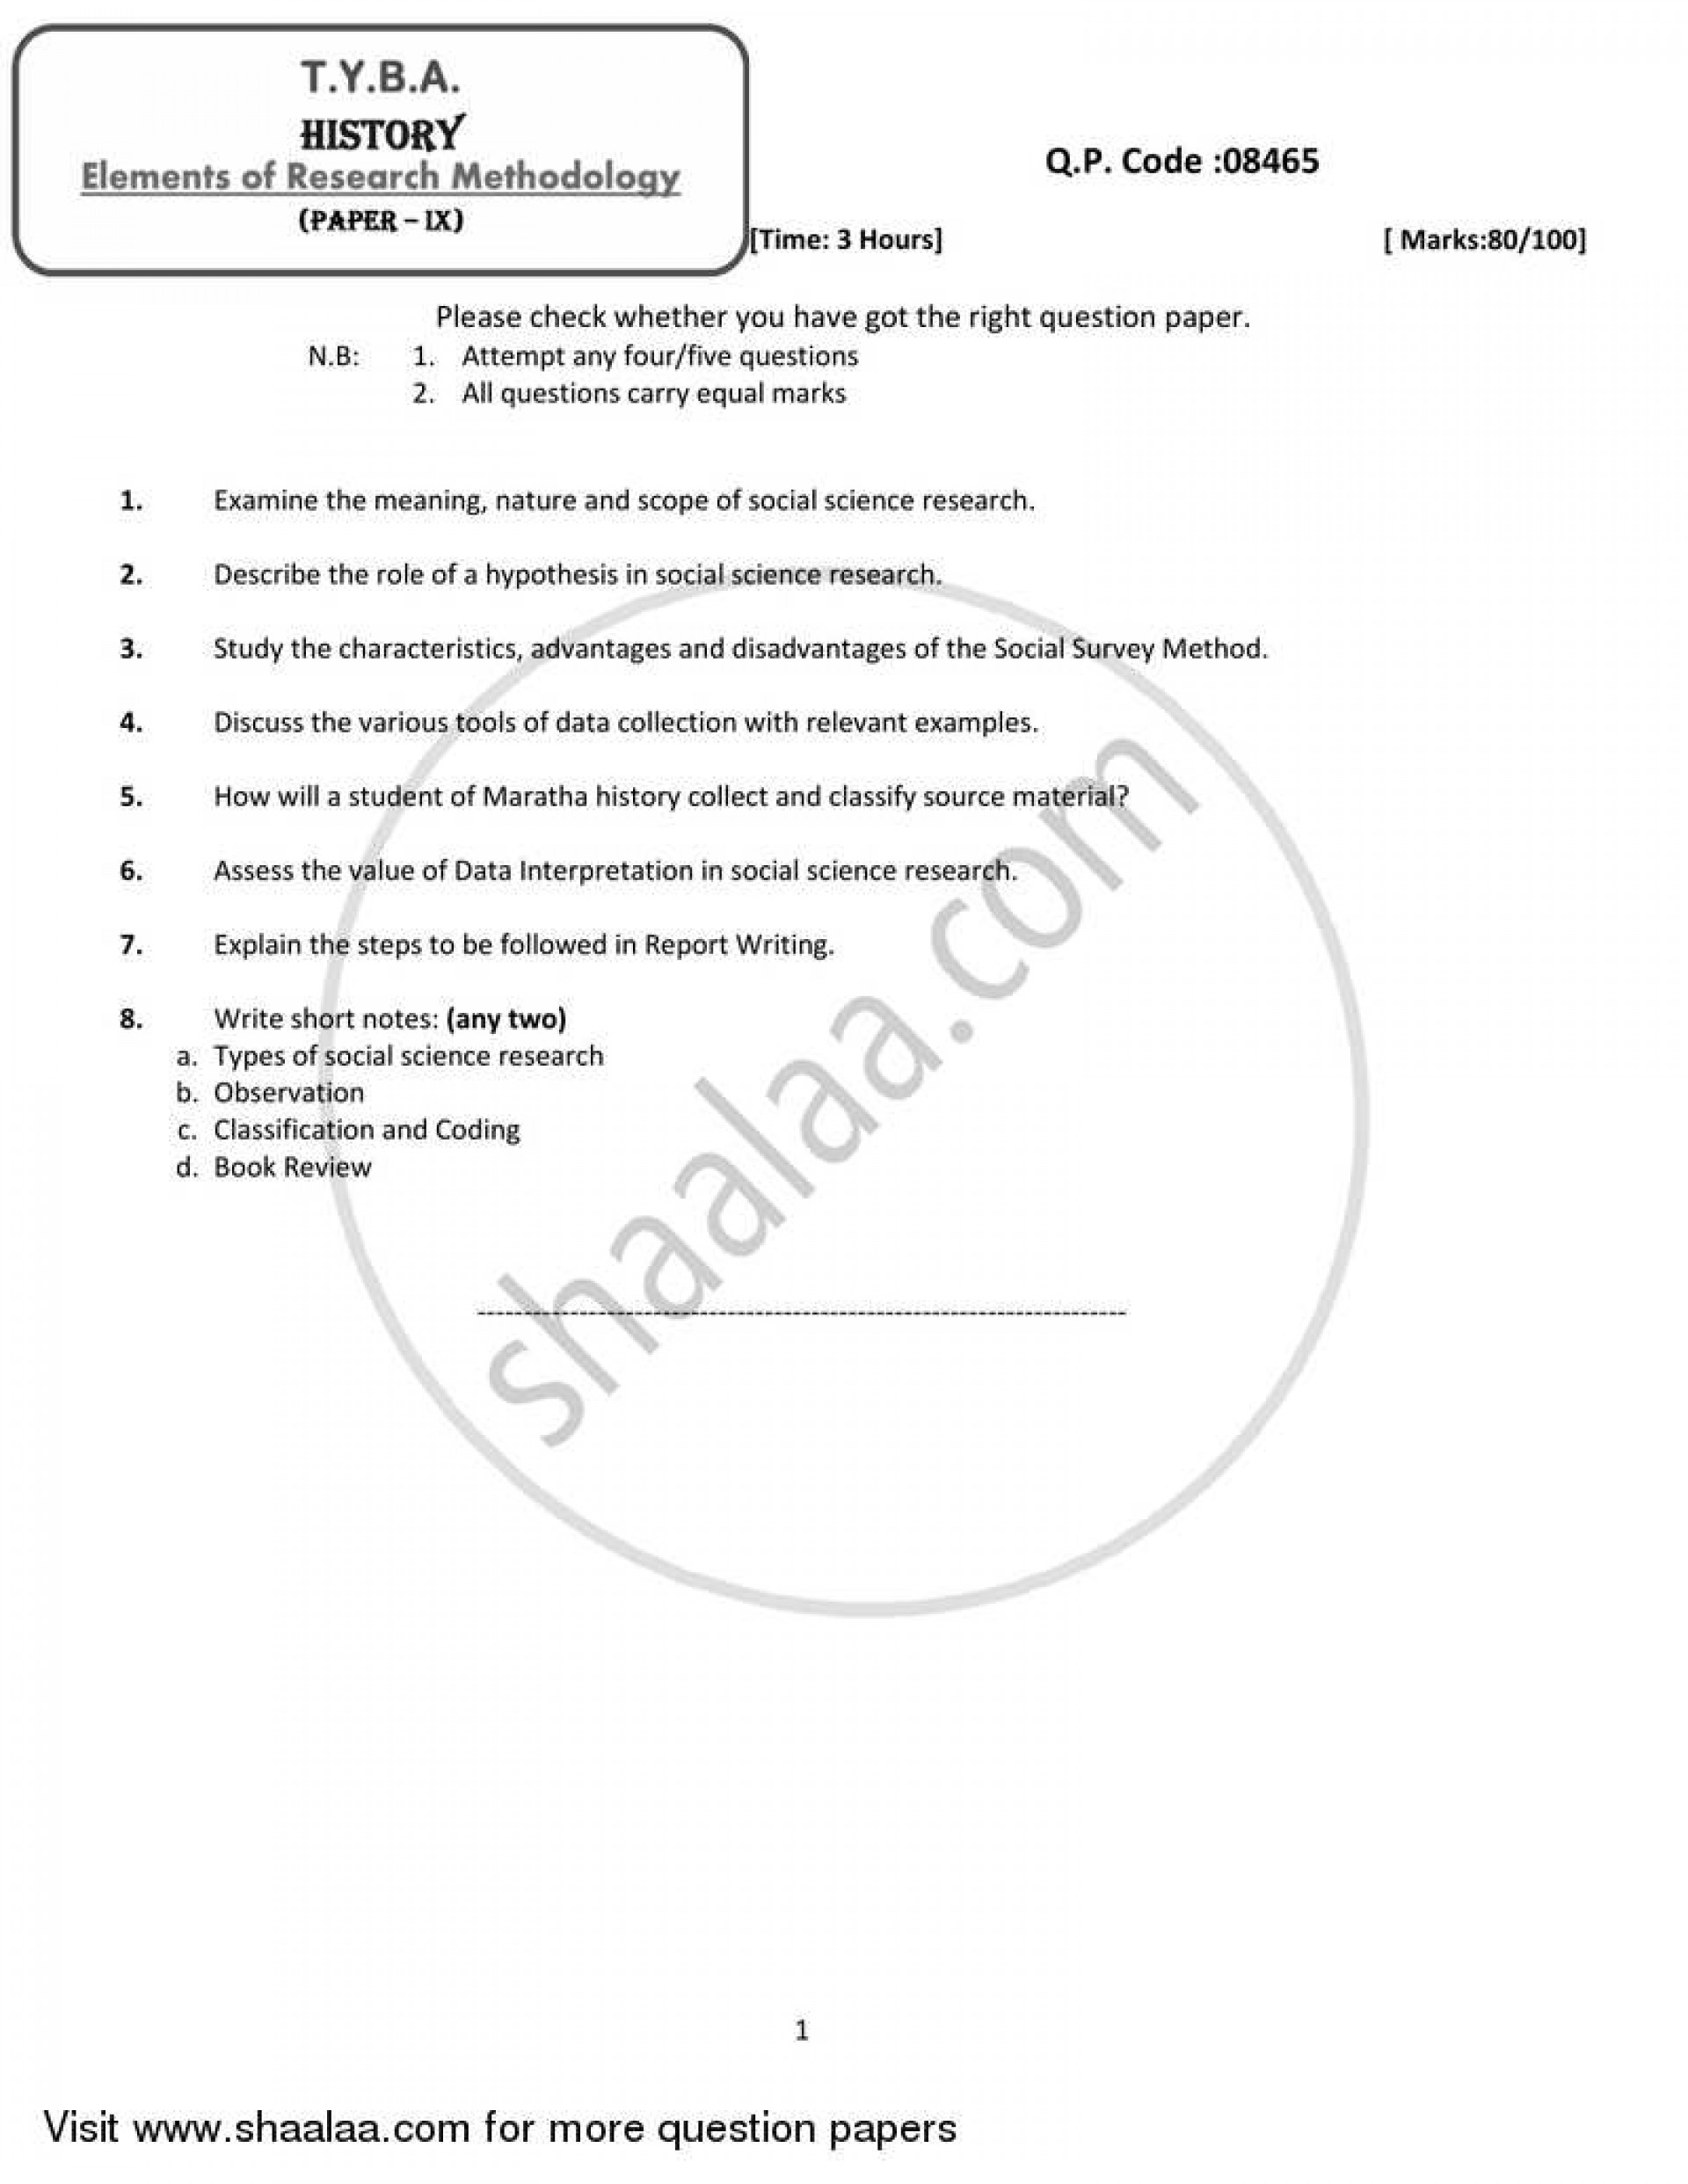 014 Hypothesis In Research Paper Pdf University Of Mumbai Bachelor Elements Methodology Ty History Yearly Pattern 3rd Year Tyba 2018 285cfda648e134cab9025052554be7cce Sensational Testing 1920